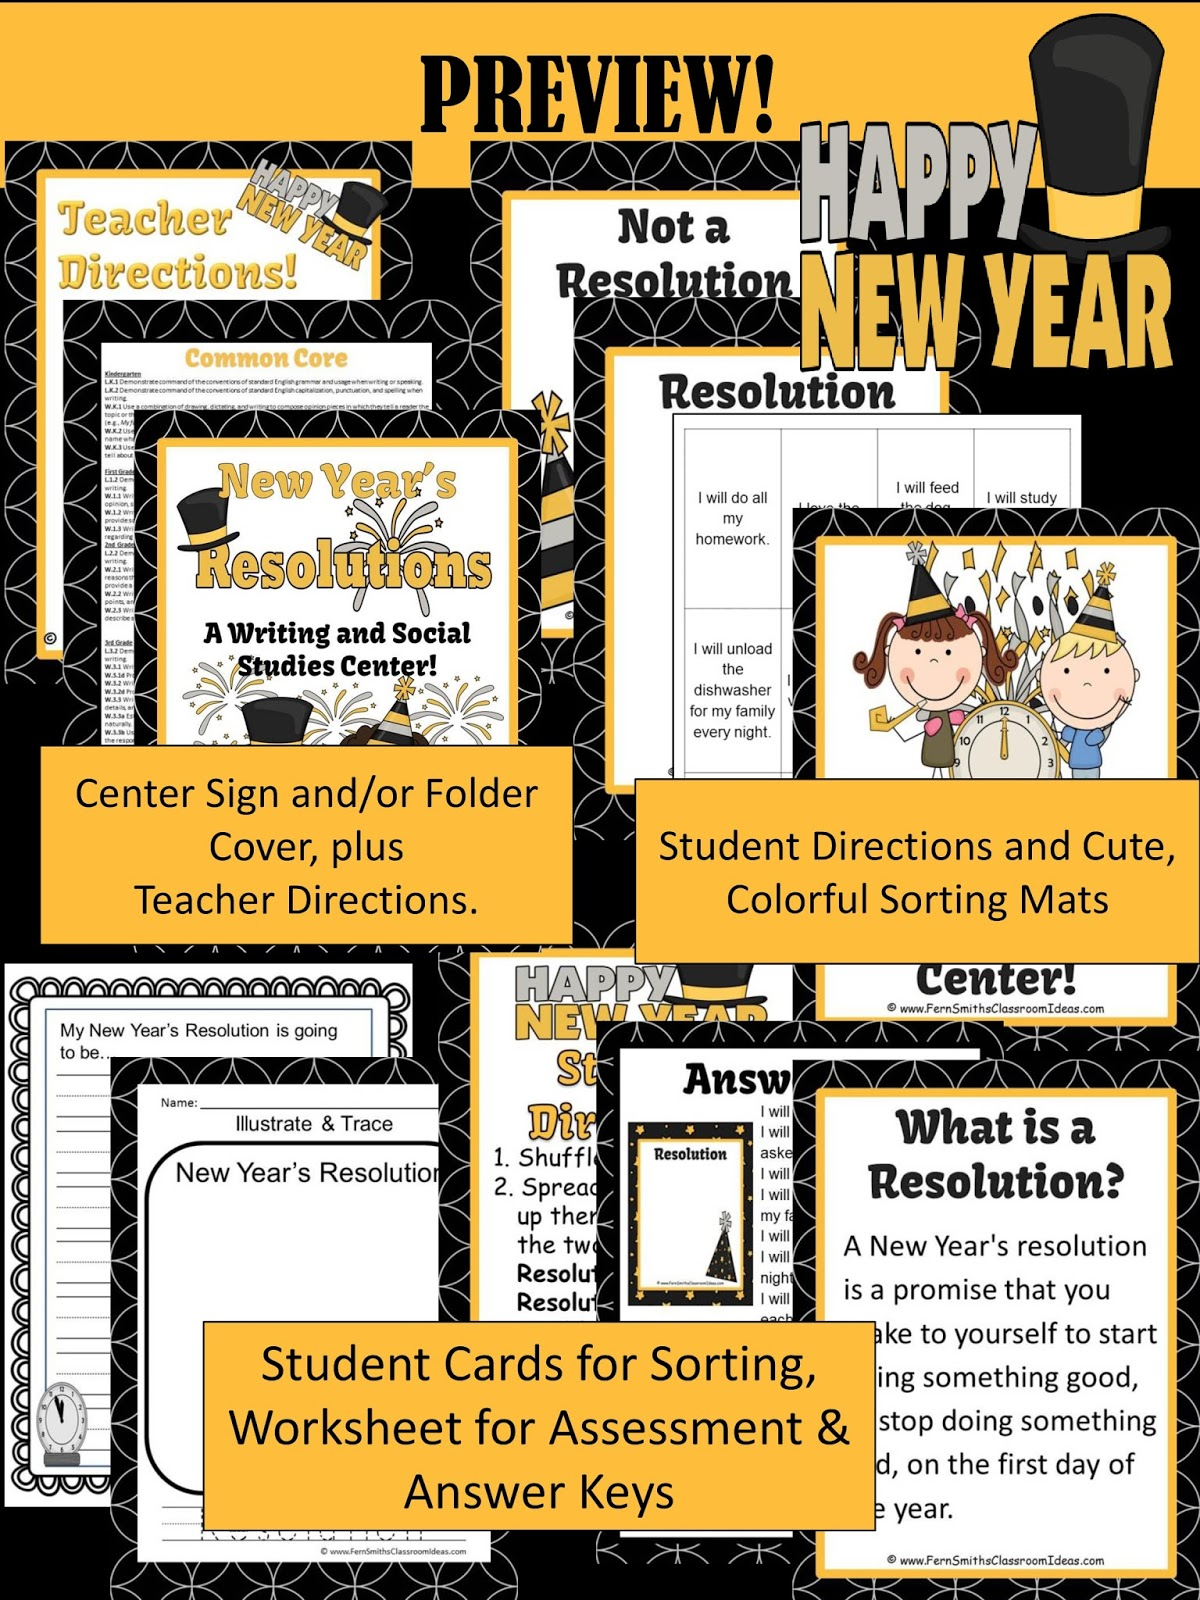 Fern Smith's Classroom Ideas New Year's Day Themed Resolution Writing and Social Studies Center